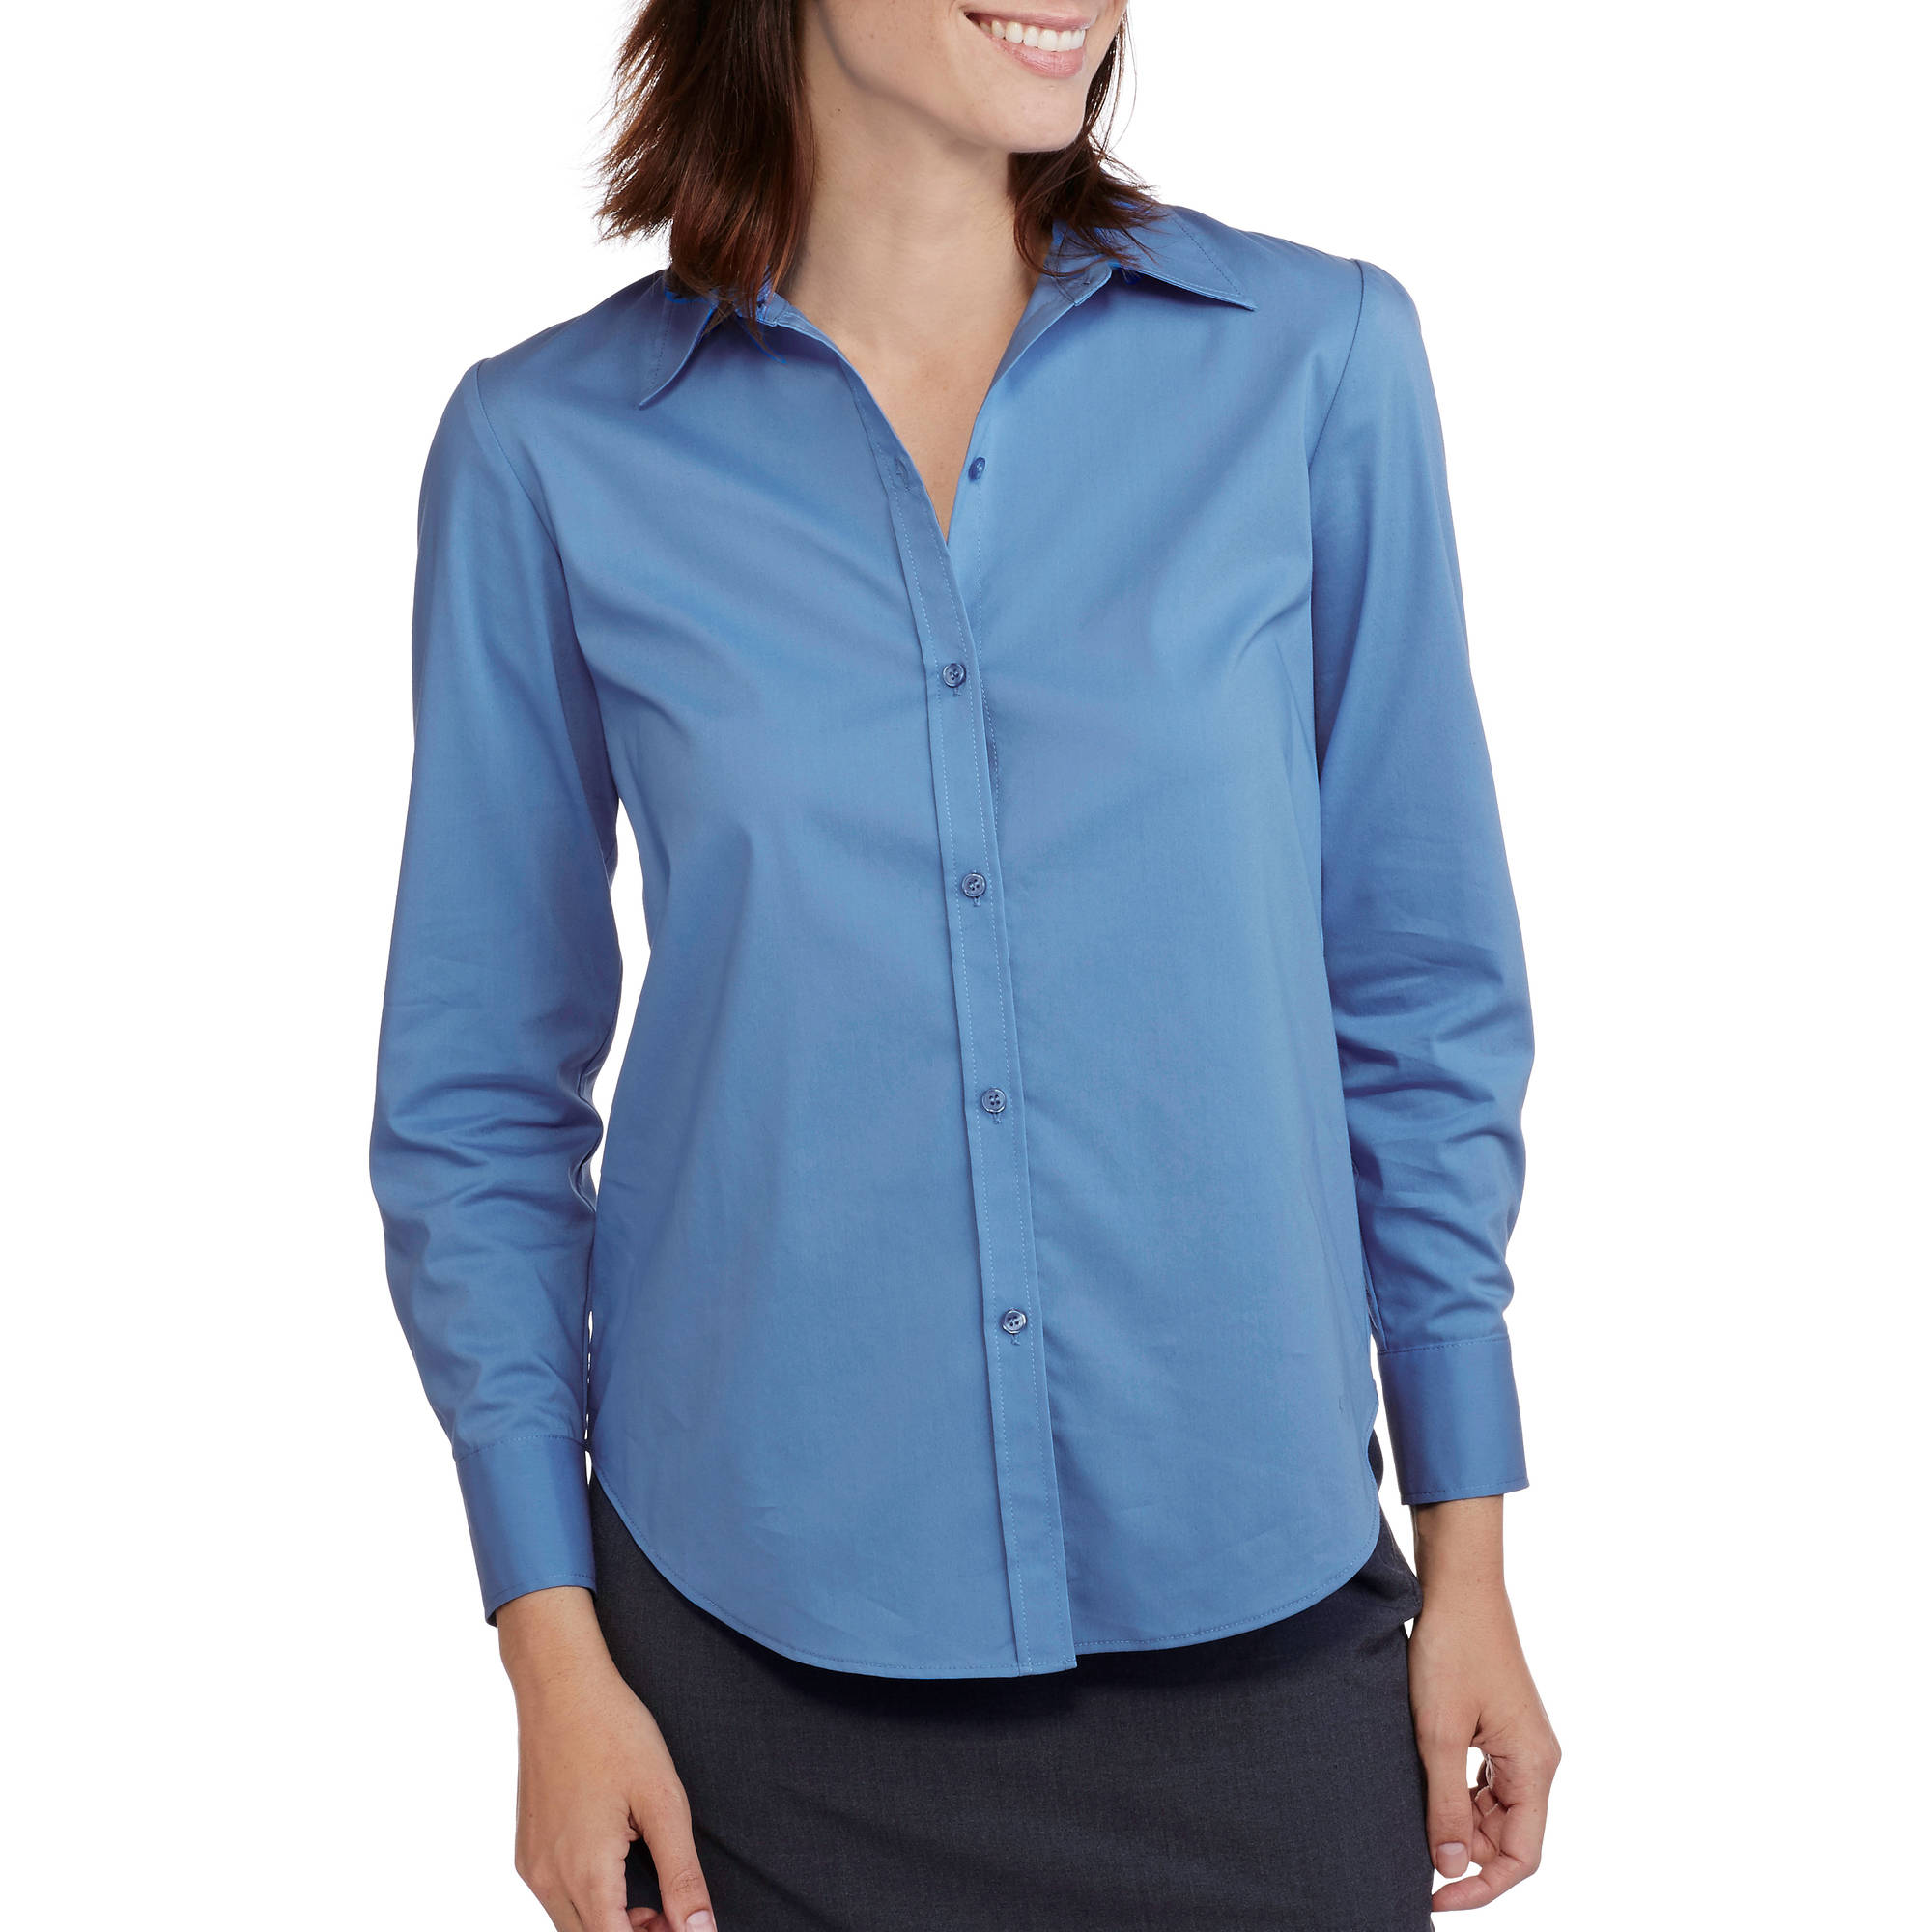 George Career Essentials Women's Long-Sleeve Core Button Down Shirt